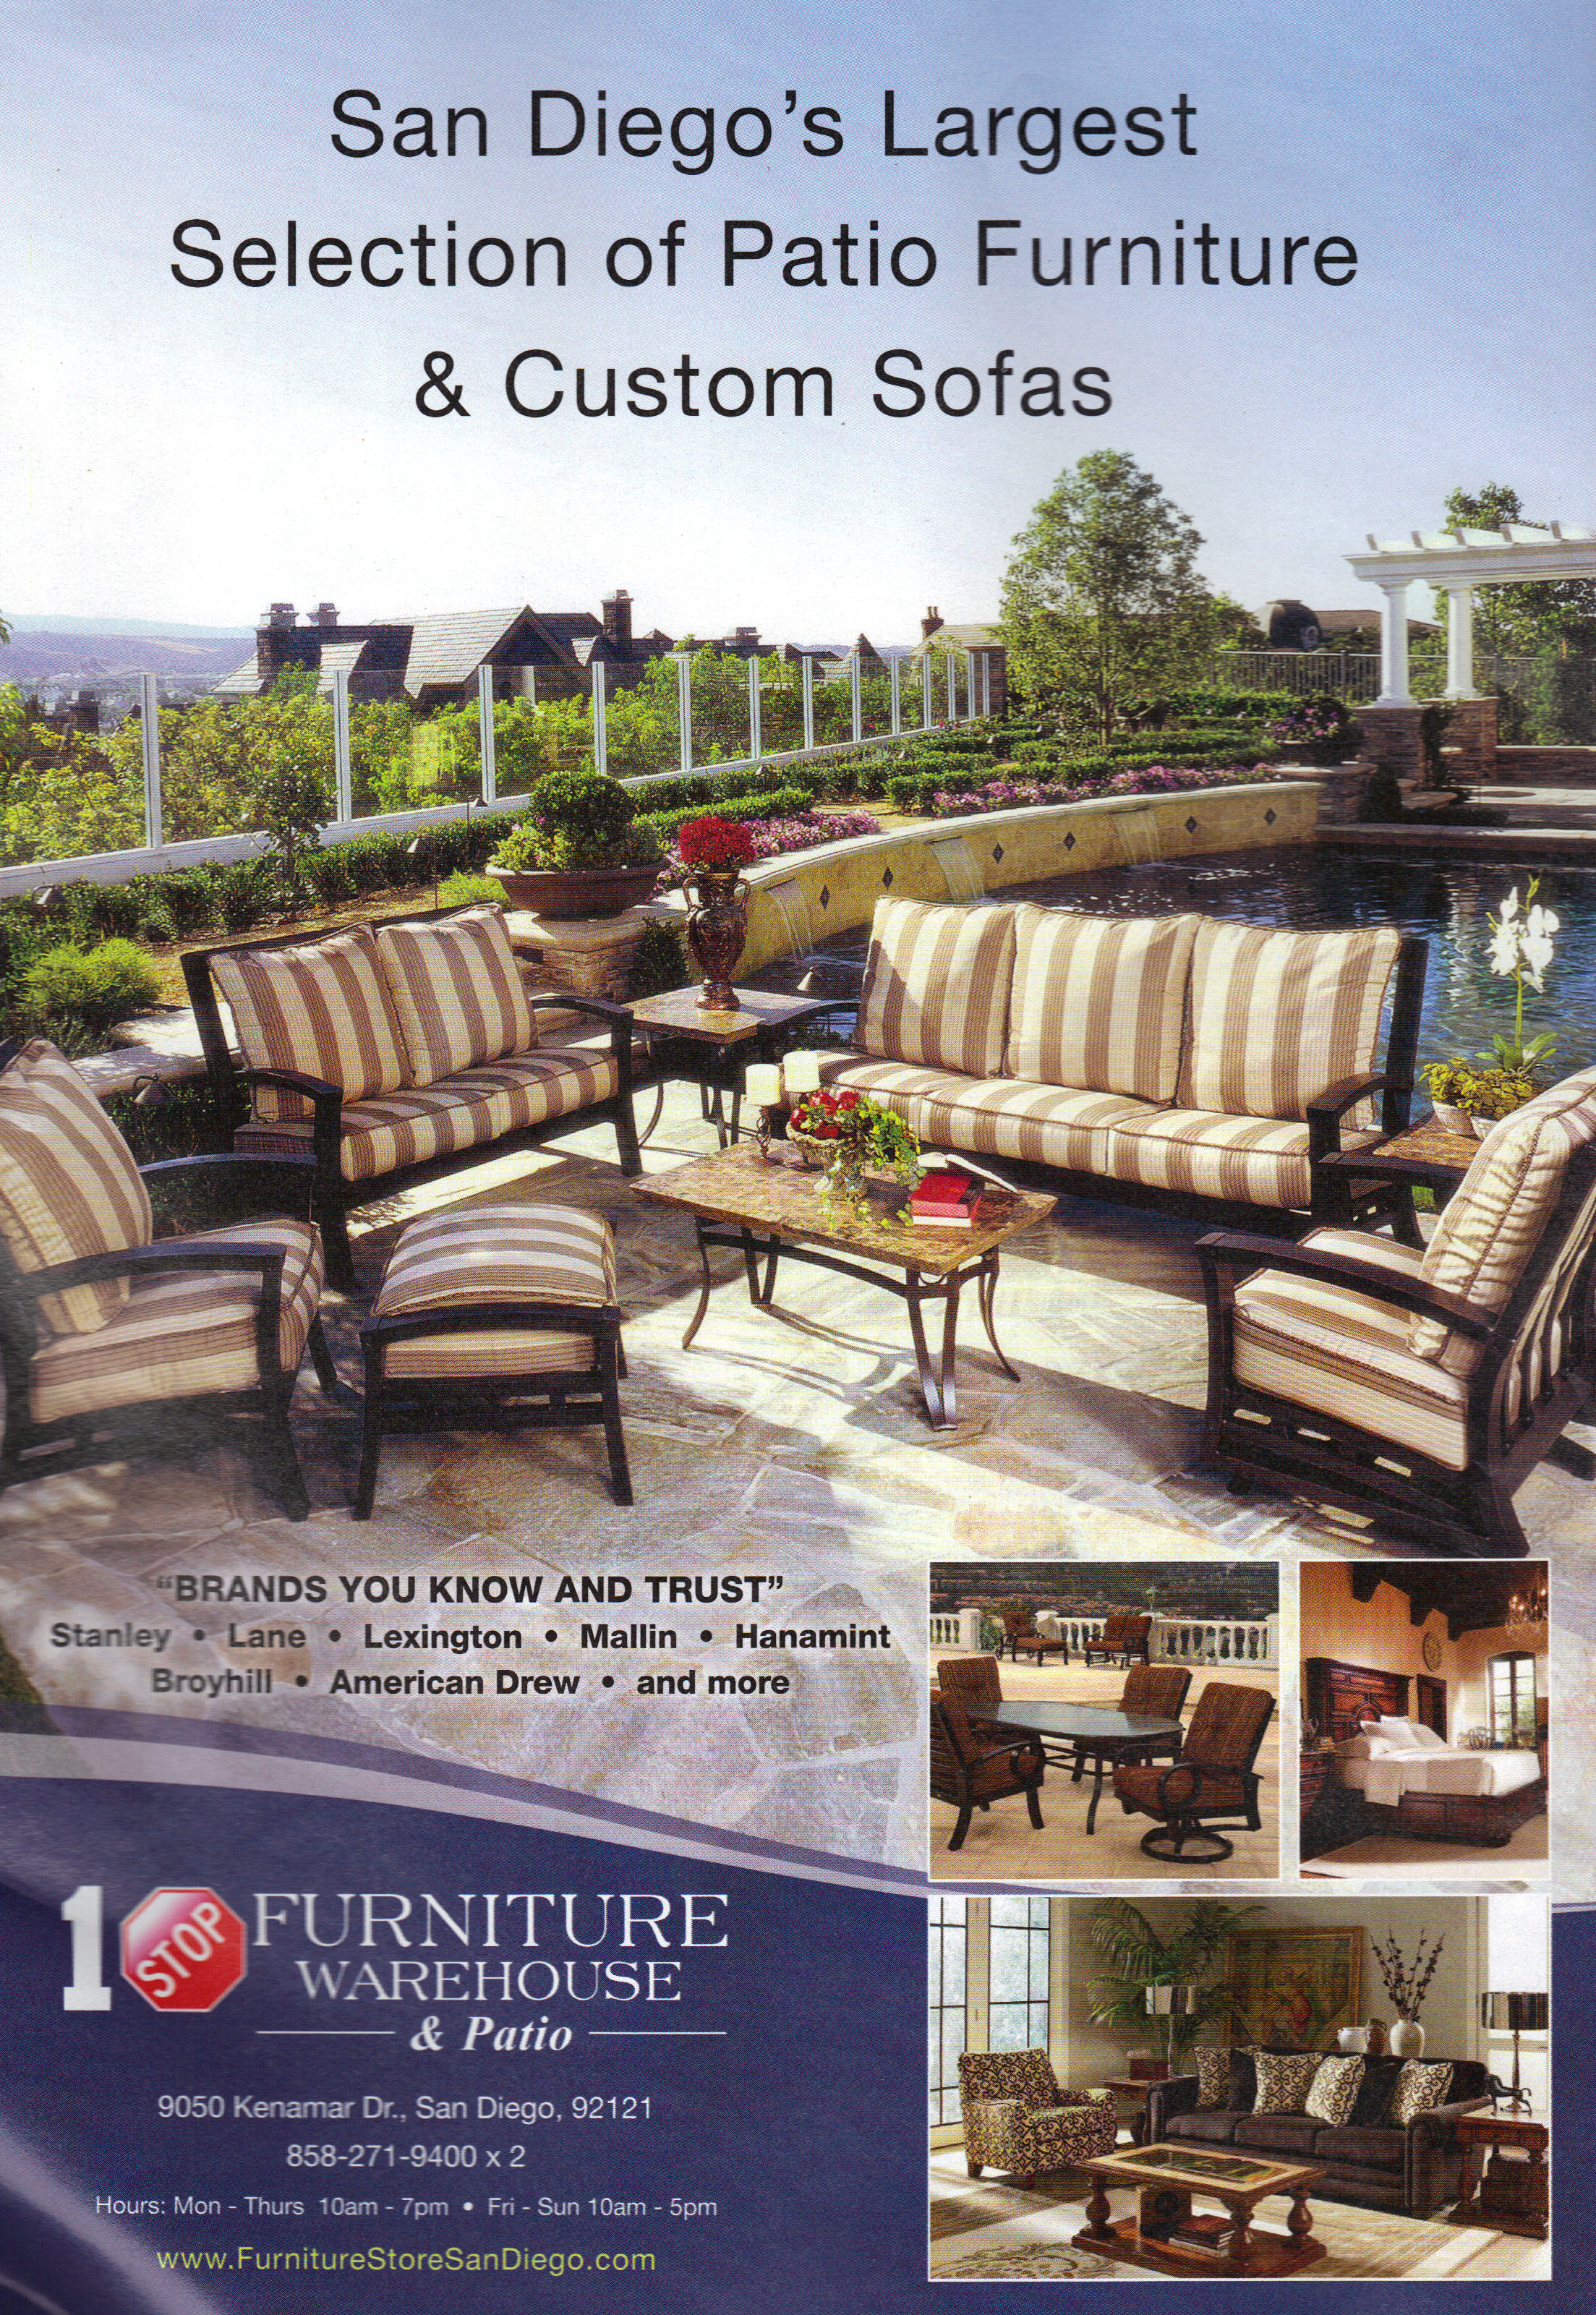 Furniture warehouse san diego 28 images san diego discount furniture warehouse san diego ca - Wholesale contemporary furniture warehouse ...